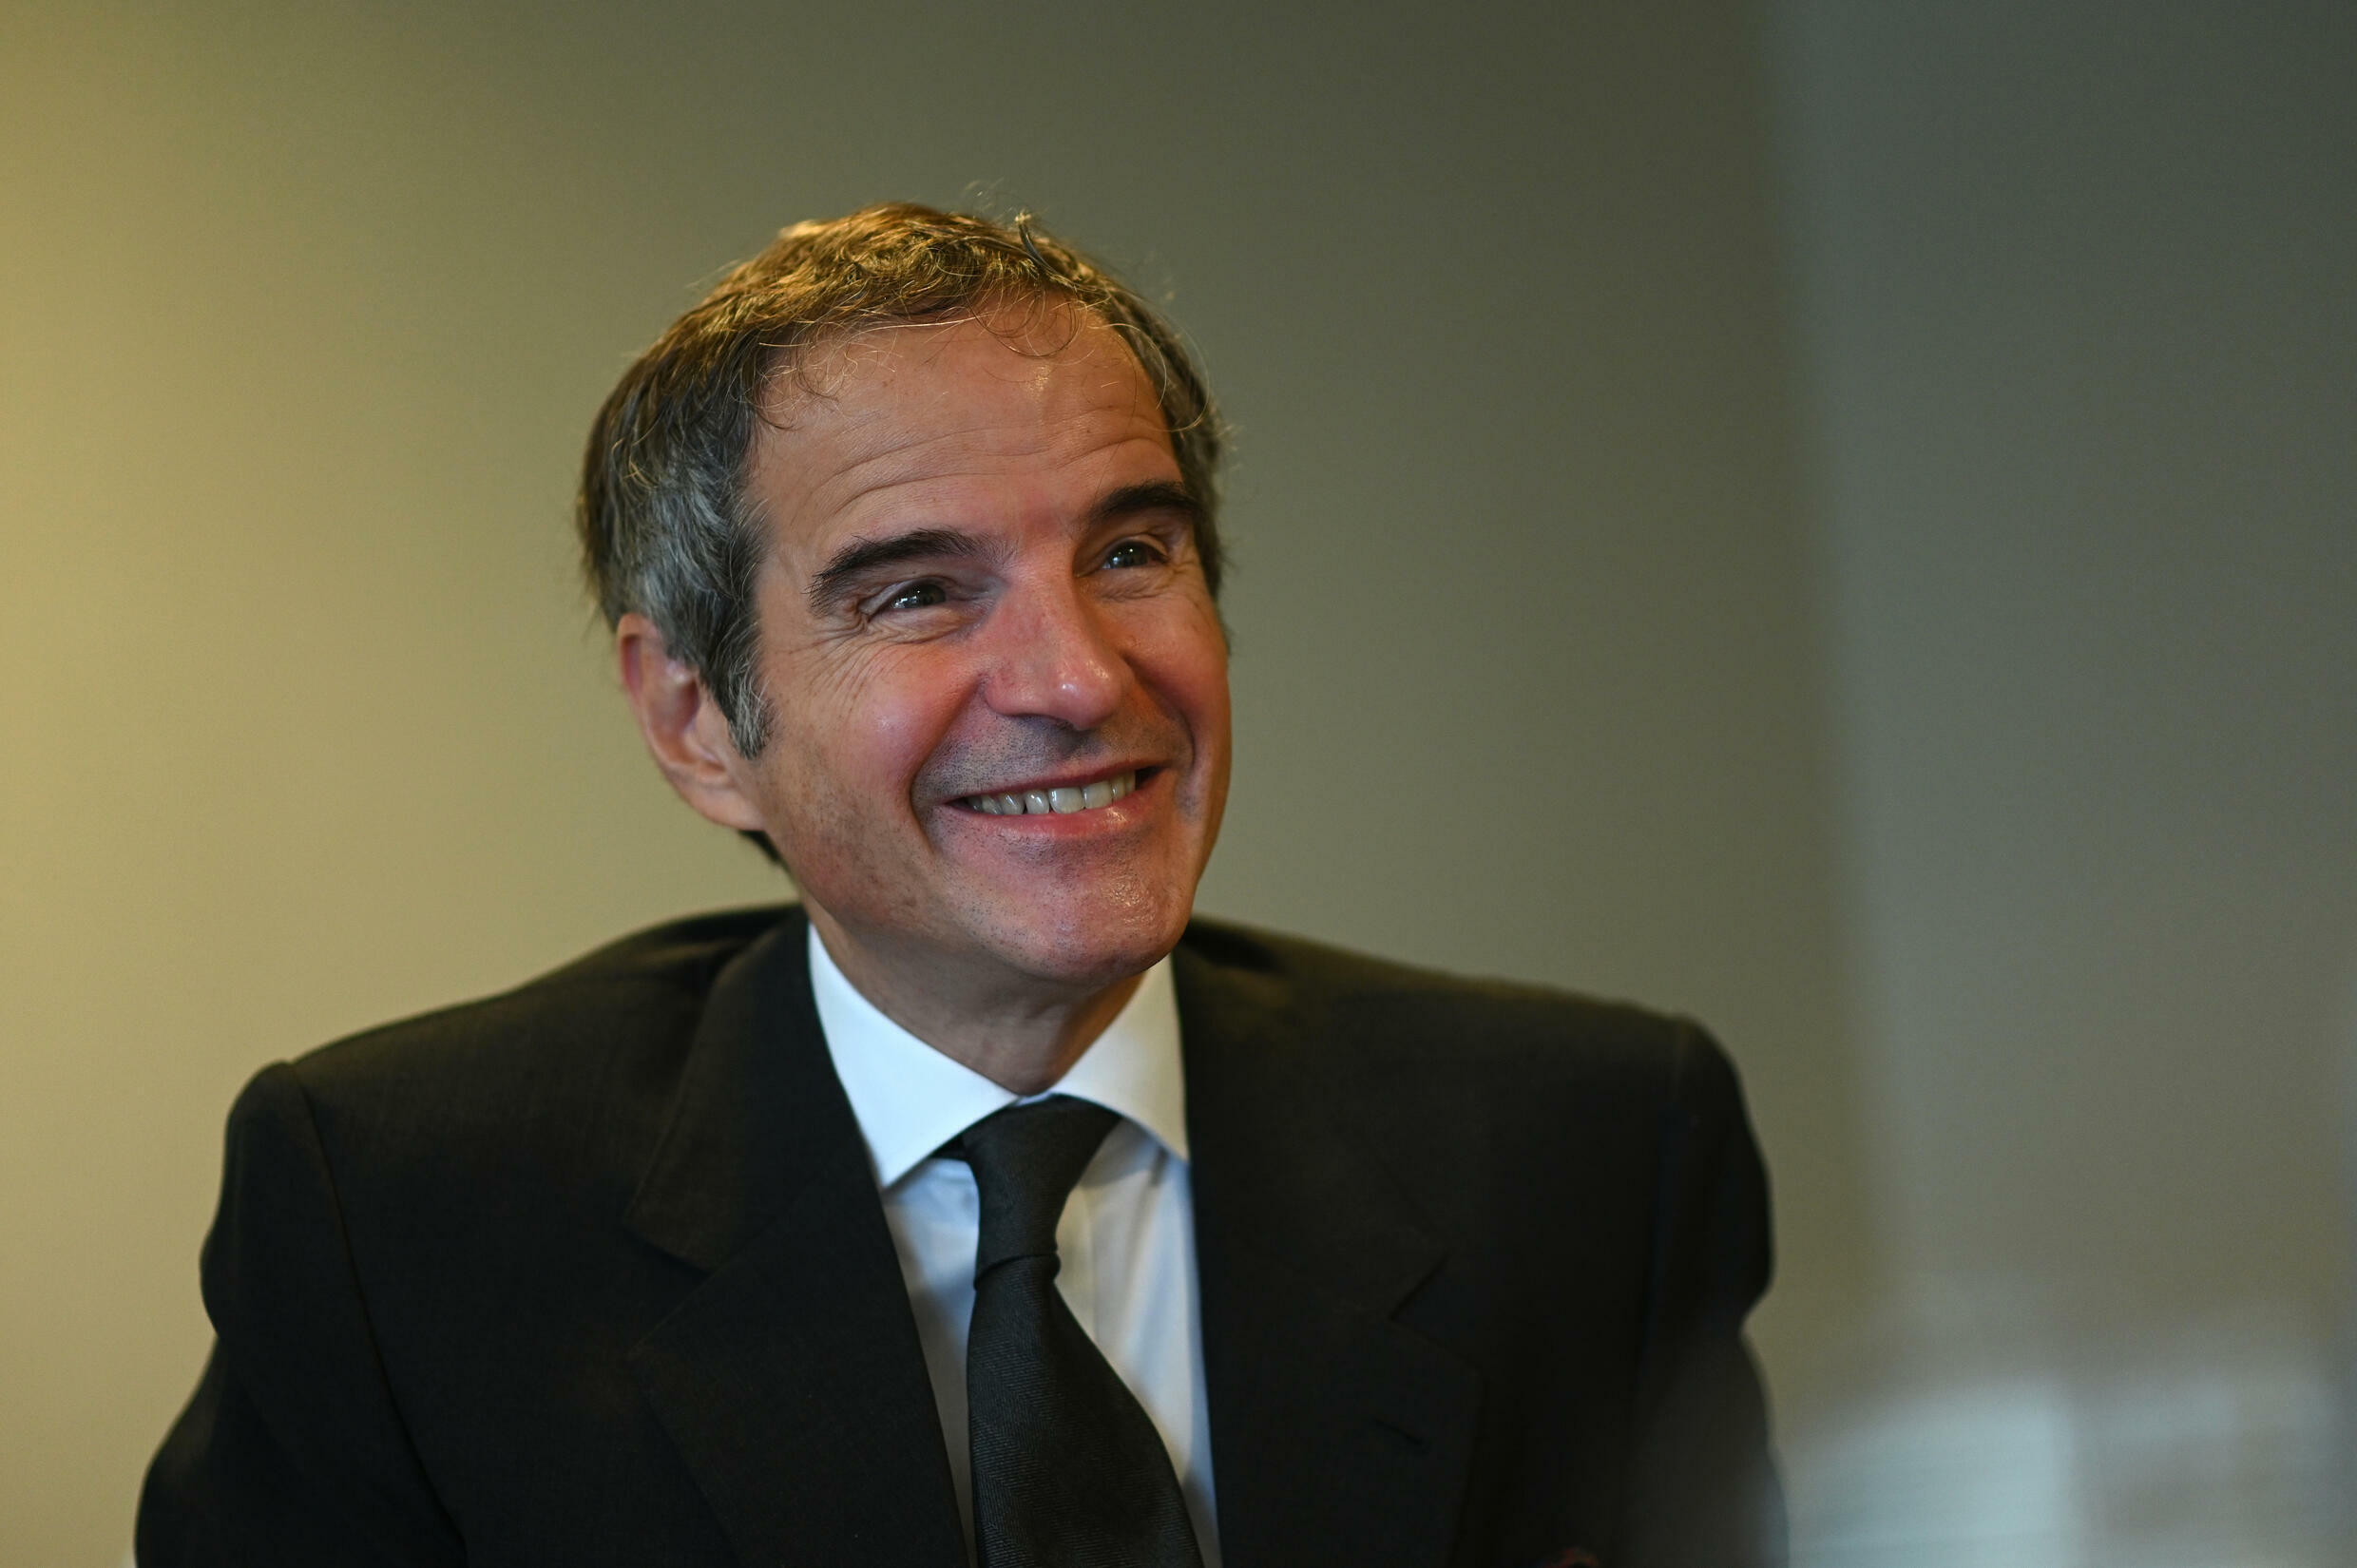 International Atomic Energy Agency chief Rafael Grossi speaks during an interview with AFP in Rio de Janeiro